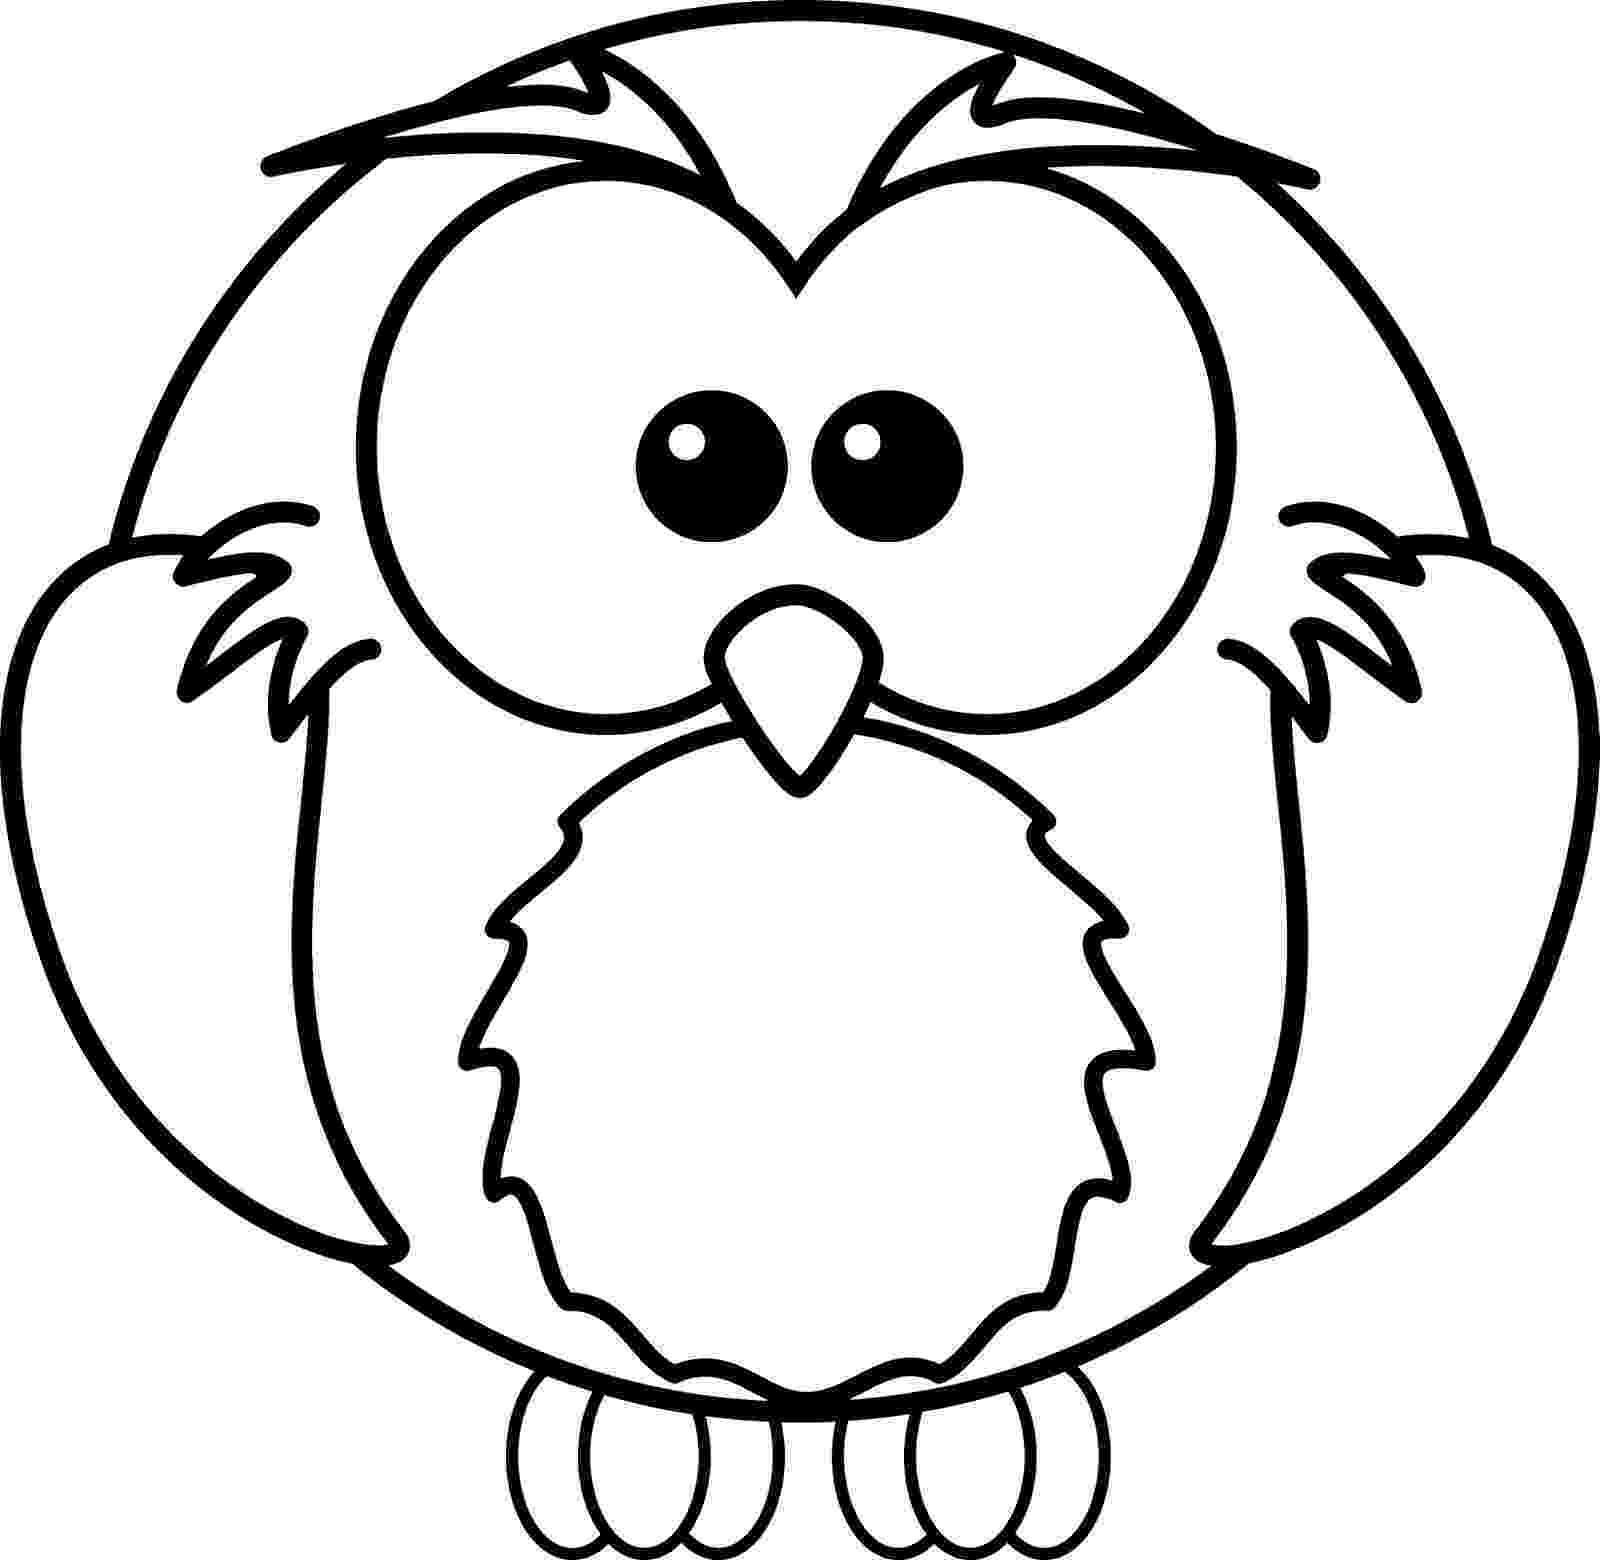 owl coloring picture free printable owl coloring pages for kids cool2bkids owl coloring picture